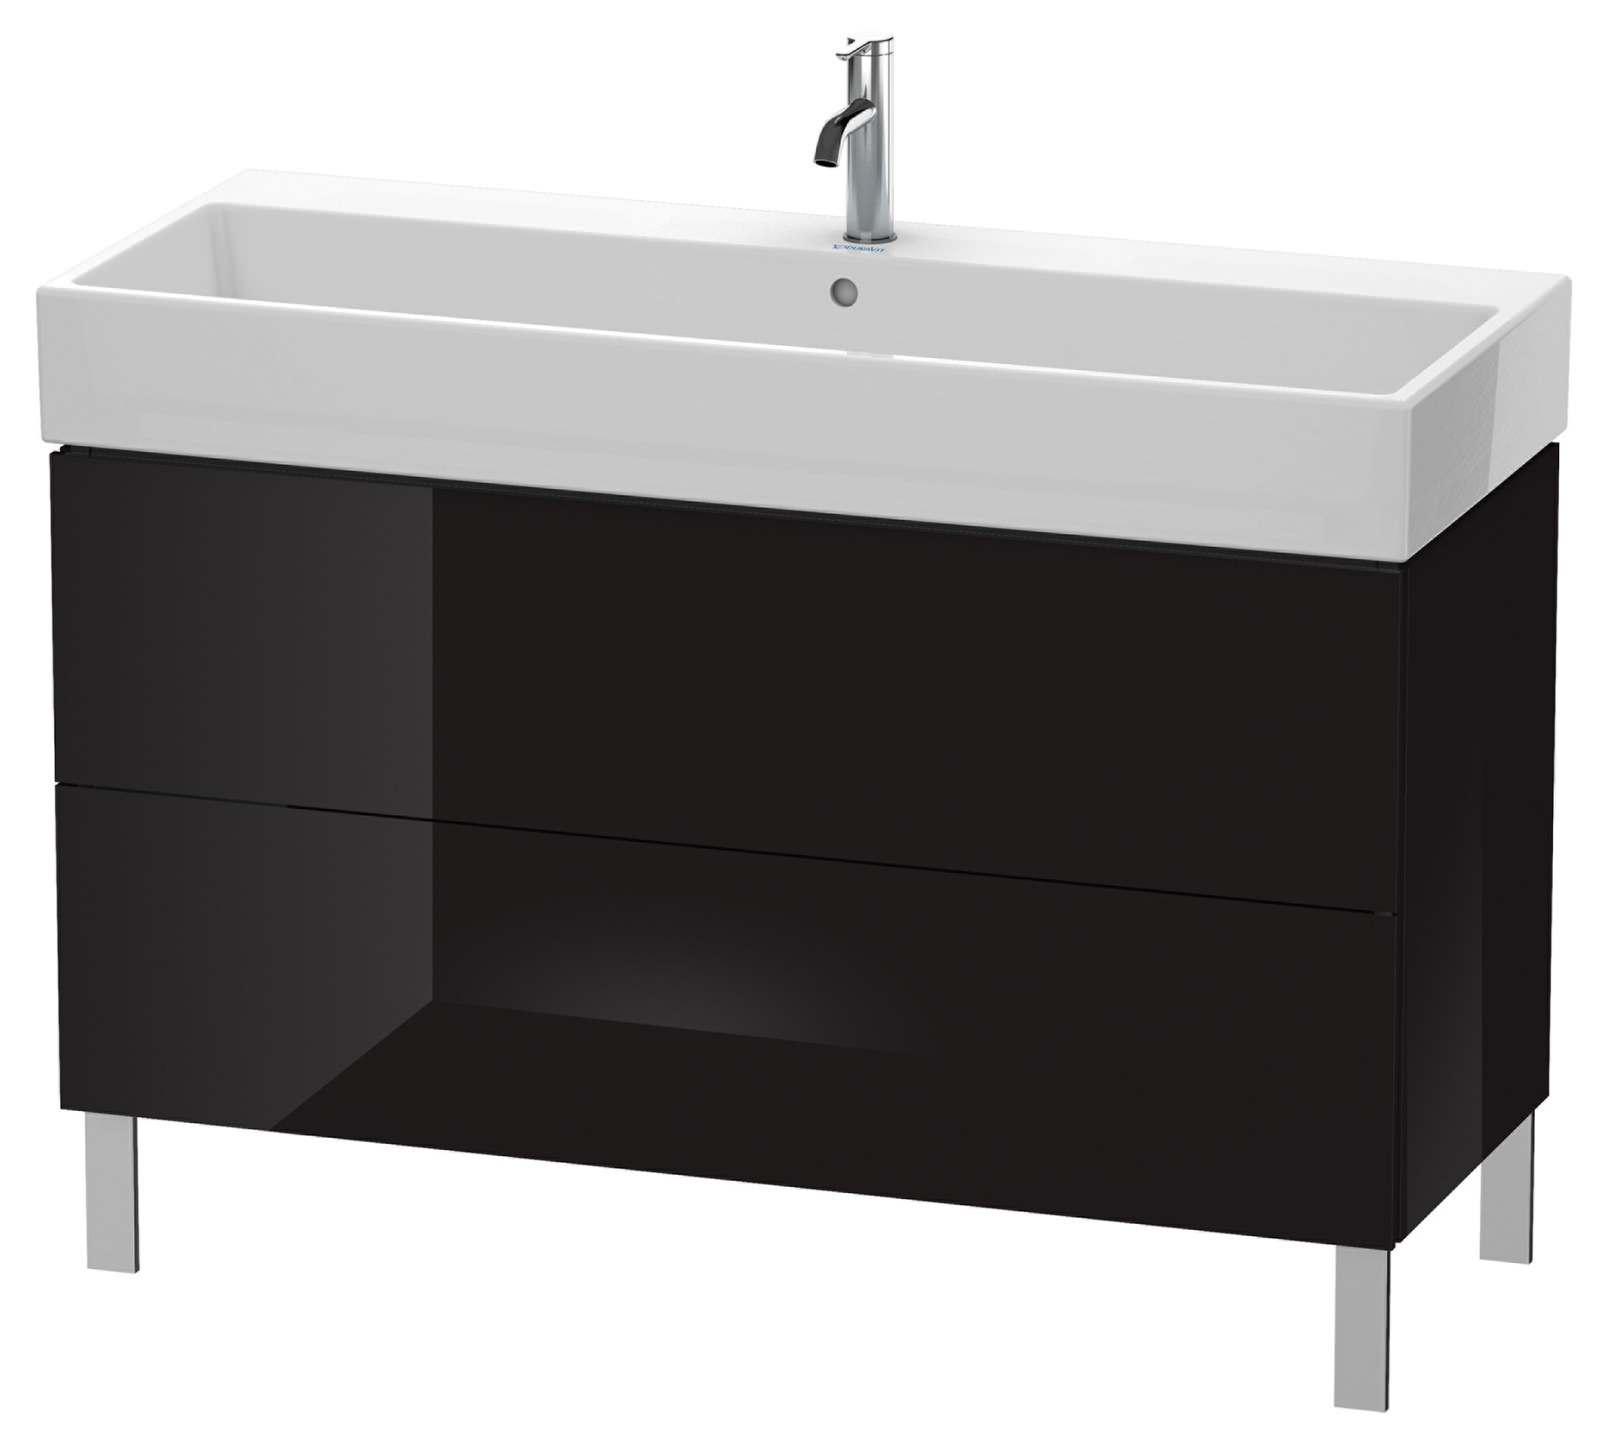 duravit l cube 1184mm floor standing vanity unit with vero air basin. Black Bedroom Furniture Sets. Home Design Ideas